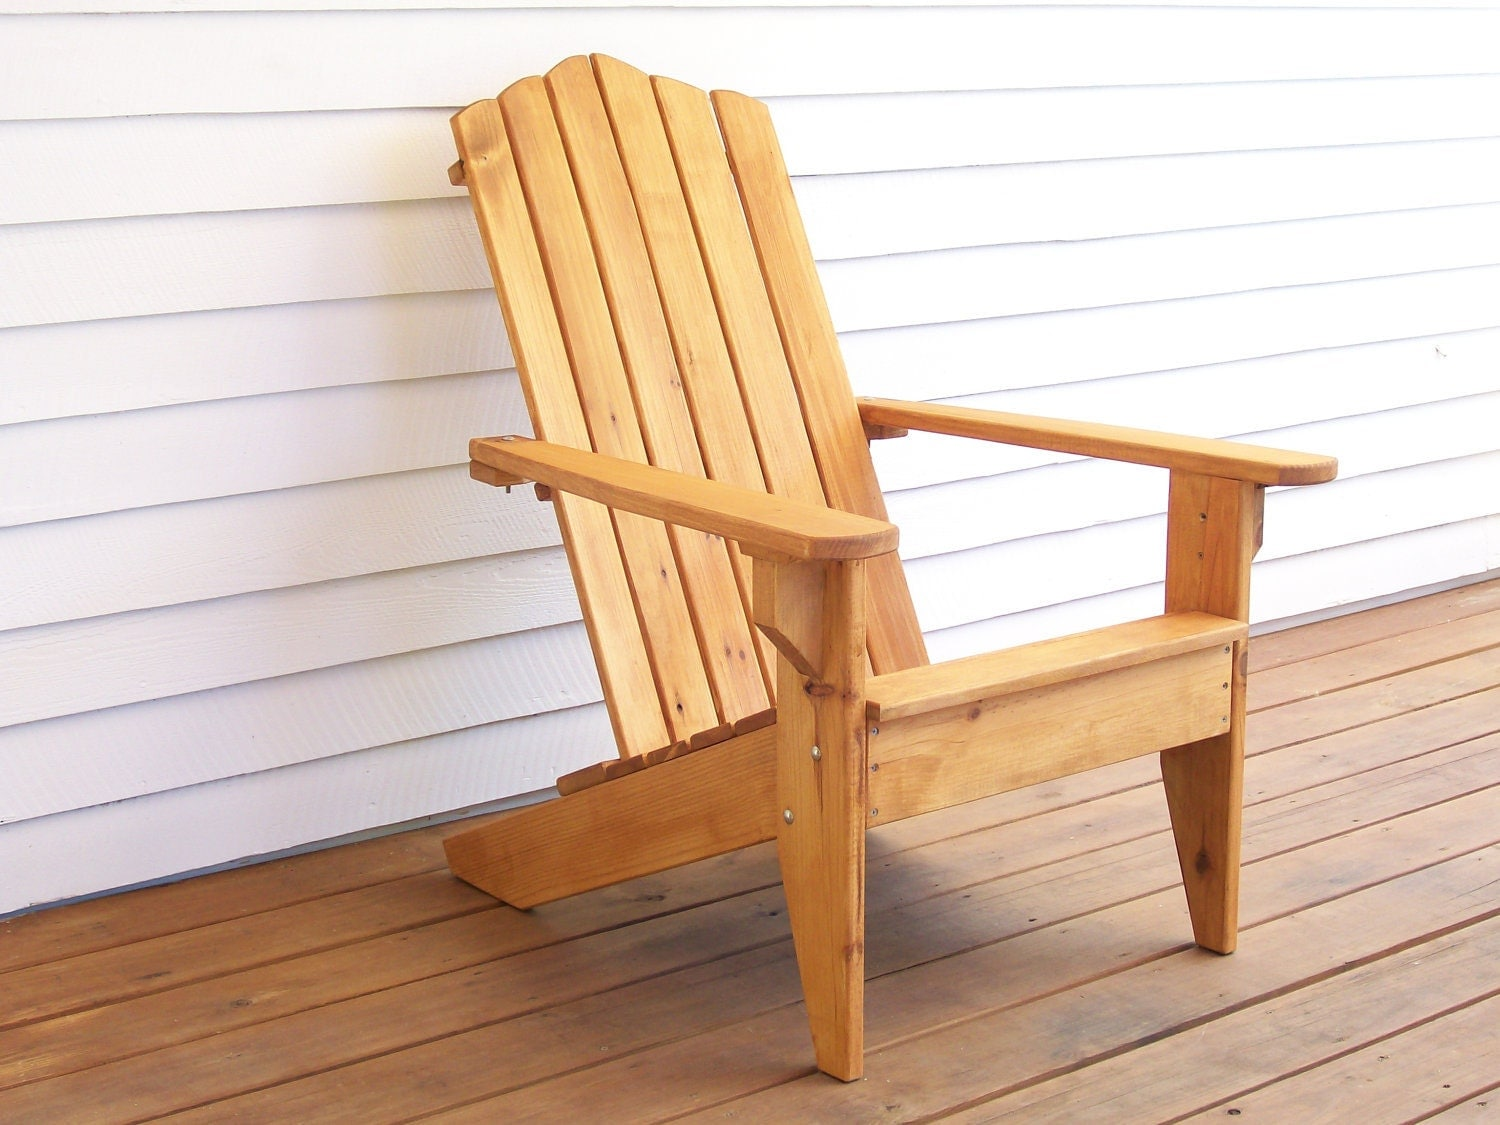 Adirondack Wood Chair Adirondack Furniture Outdoor Wood